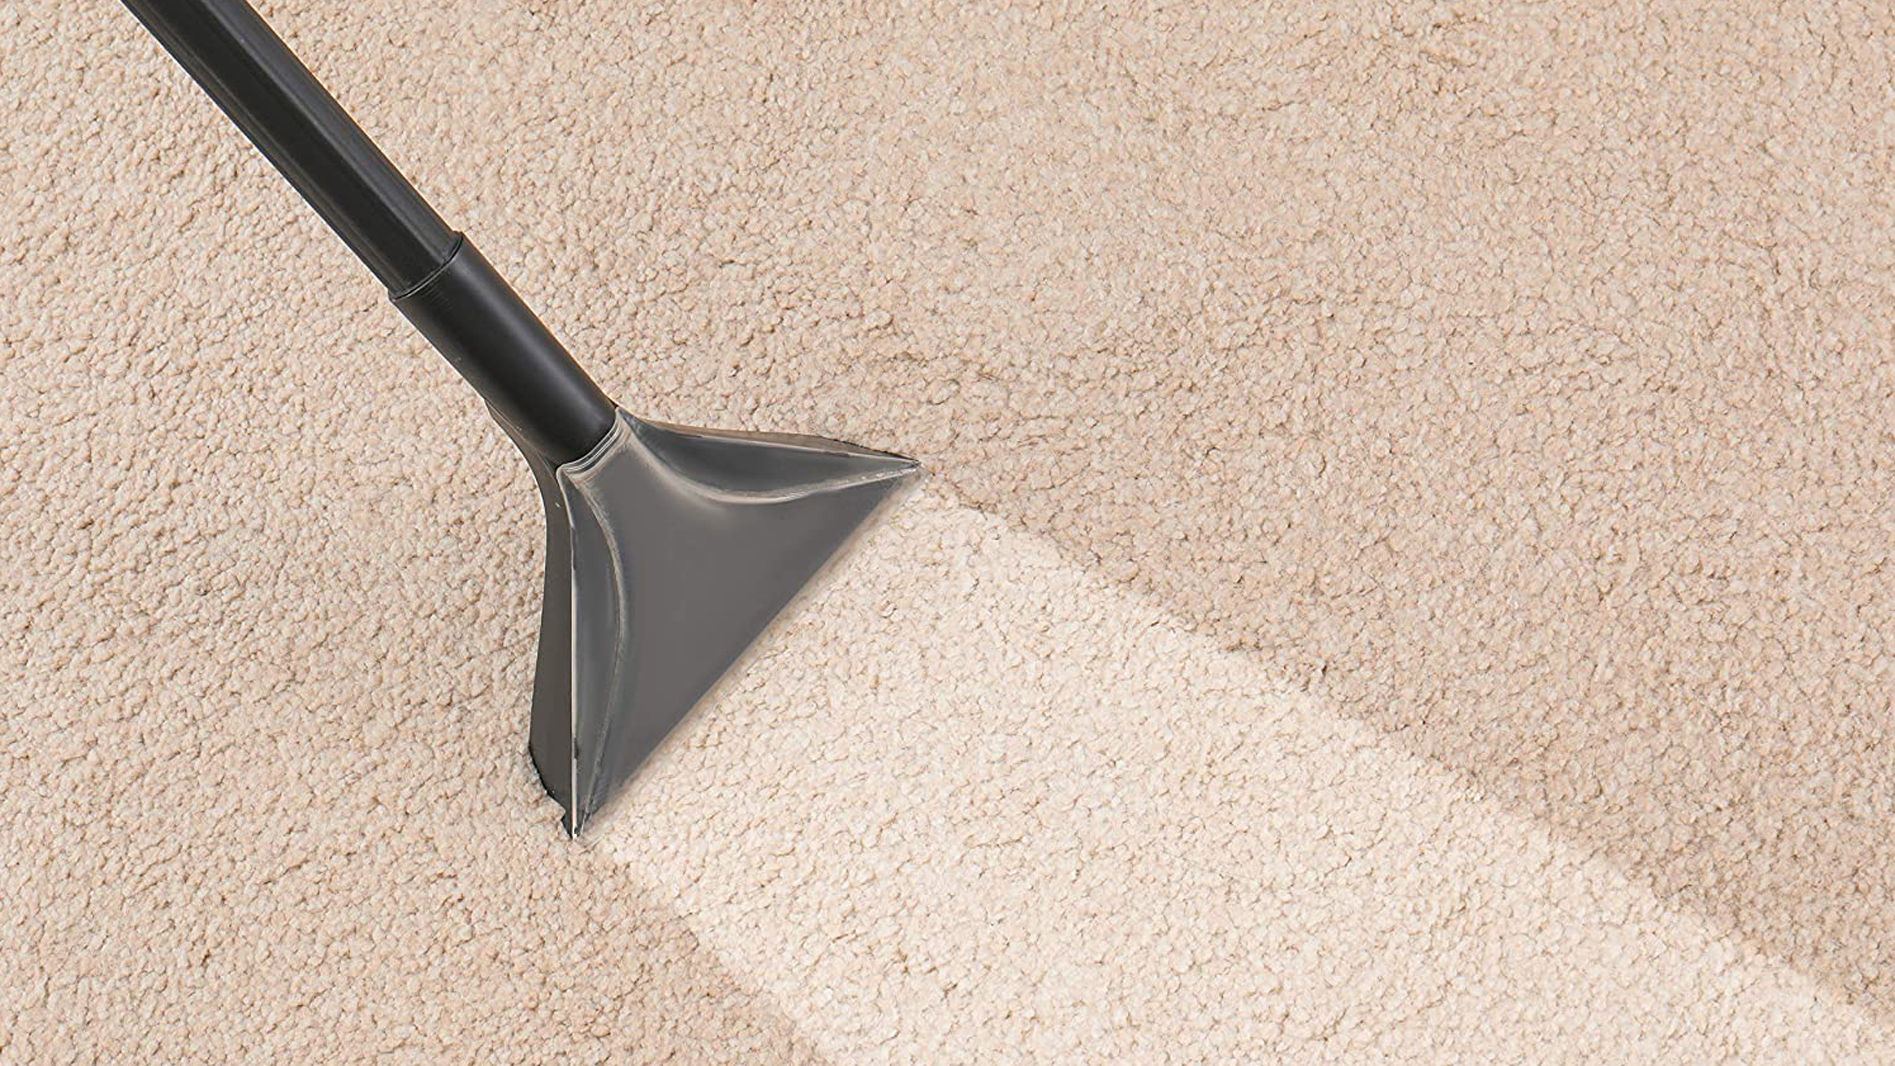 Best Carpet Cleaning Products Our 8 Best Buys To Tackle Dirt Stains And Smells Real Homes